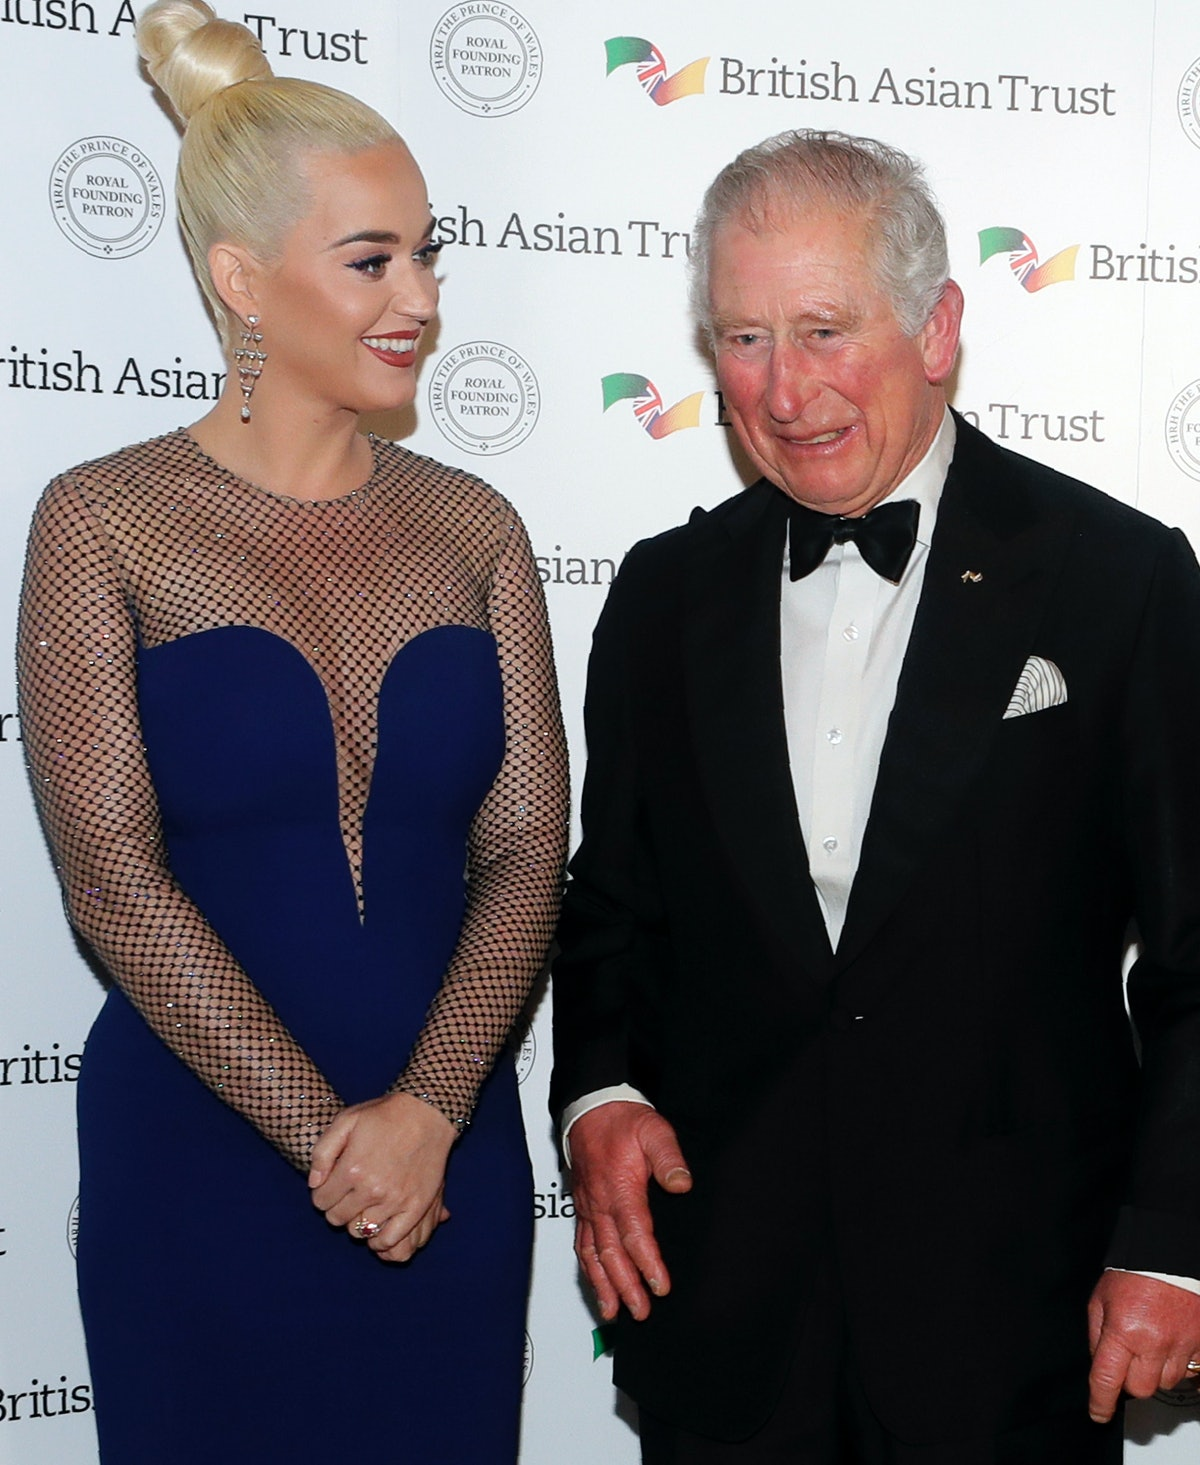 Prince Charles, Prince of Wales, Royal Founding Patron of the British Asian Trust poses with musicia...